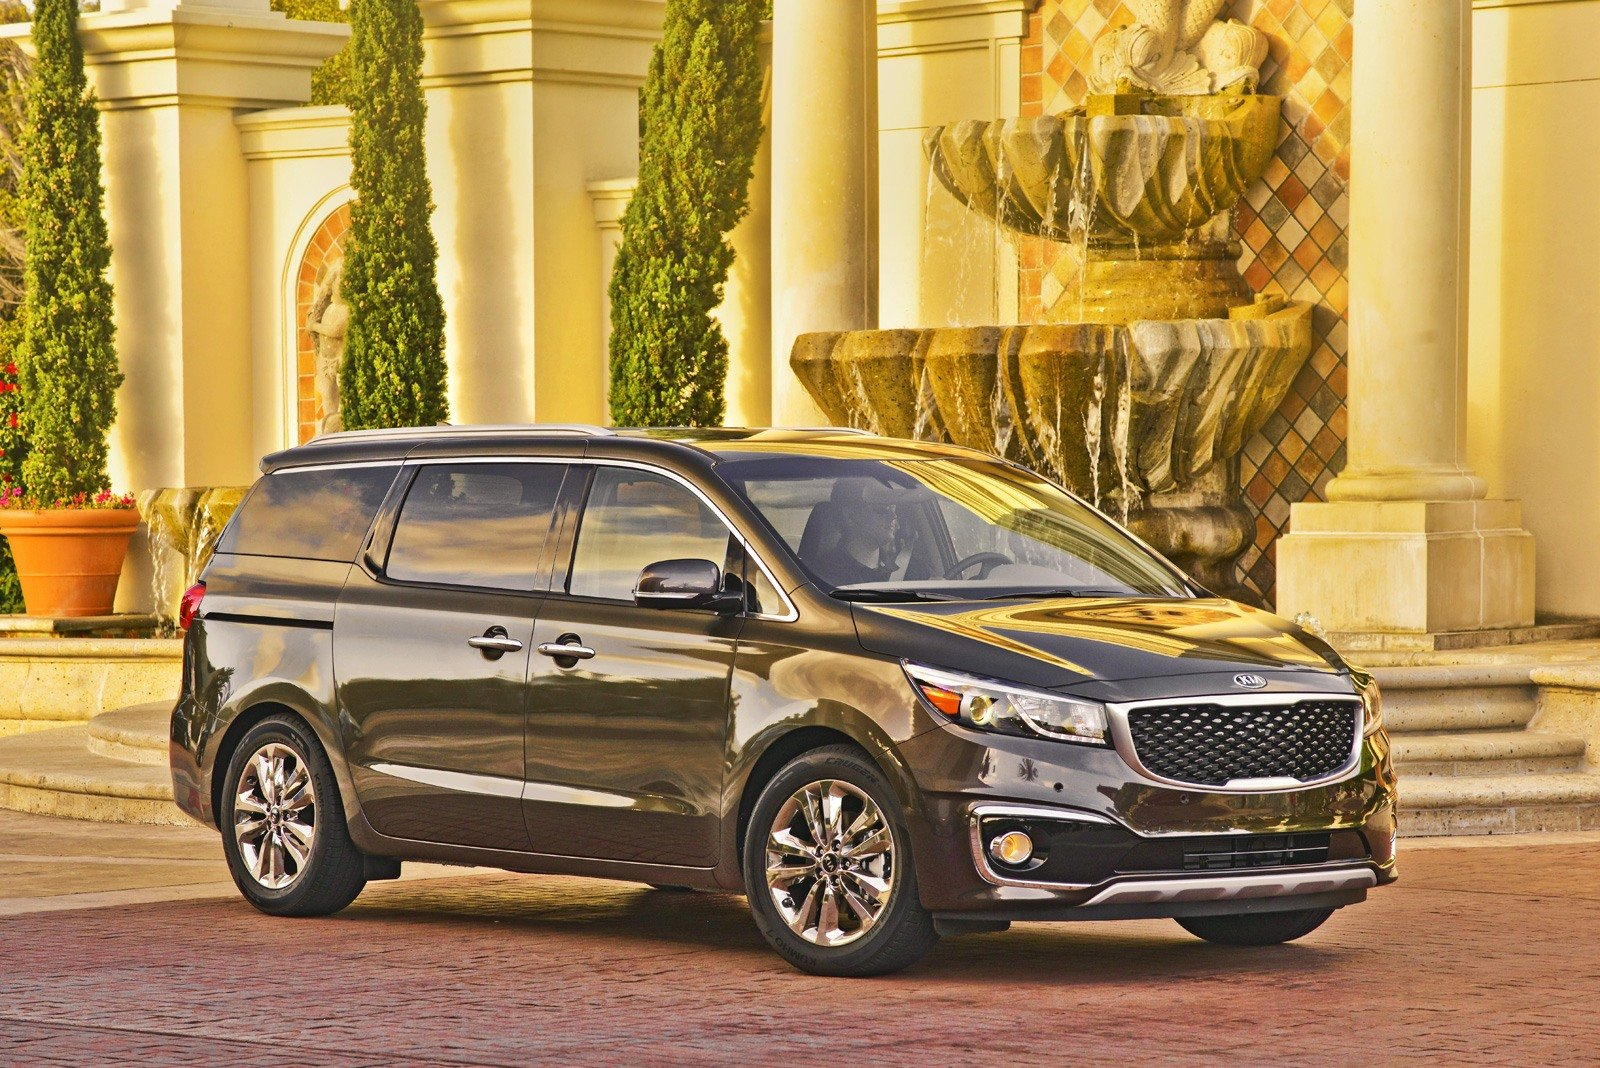 Priced from 27 850 the kia sedona is one of the most affordable new minivans available in today s market the korean automaker also has a variety of